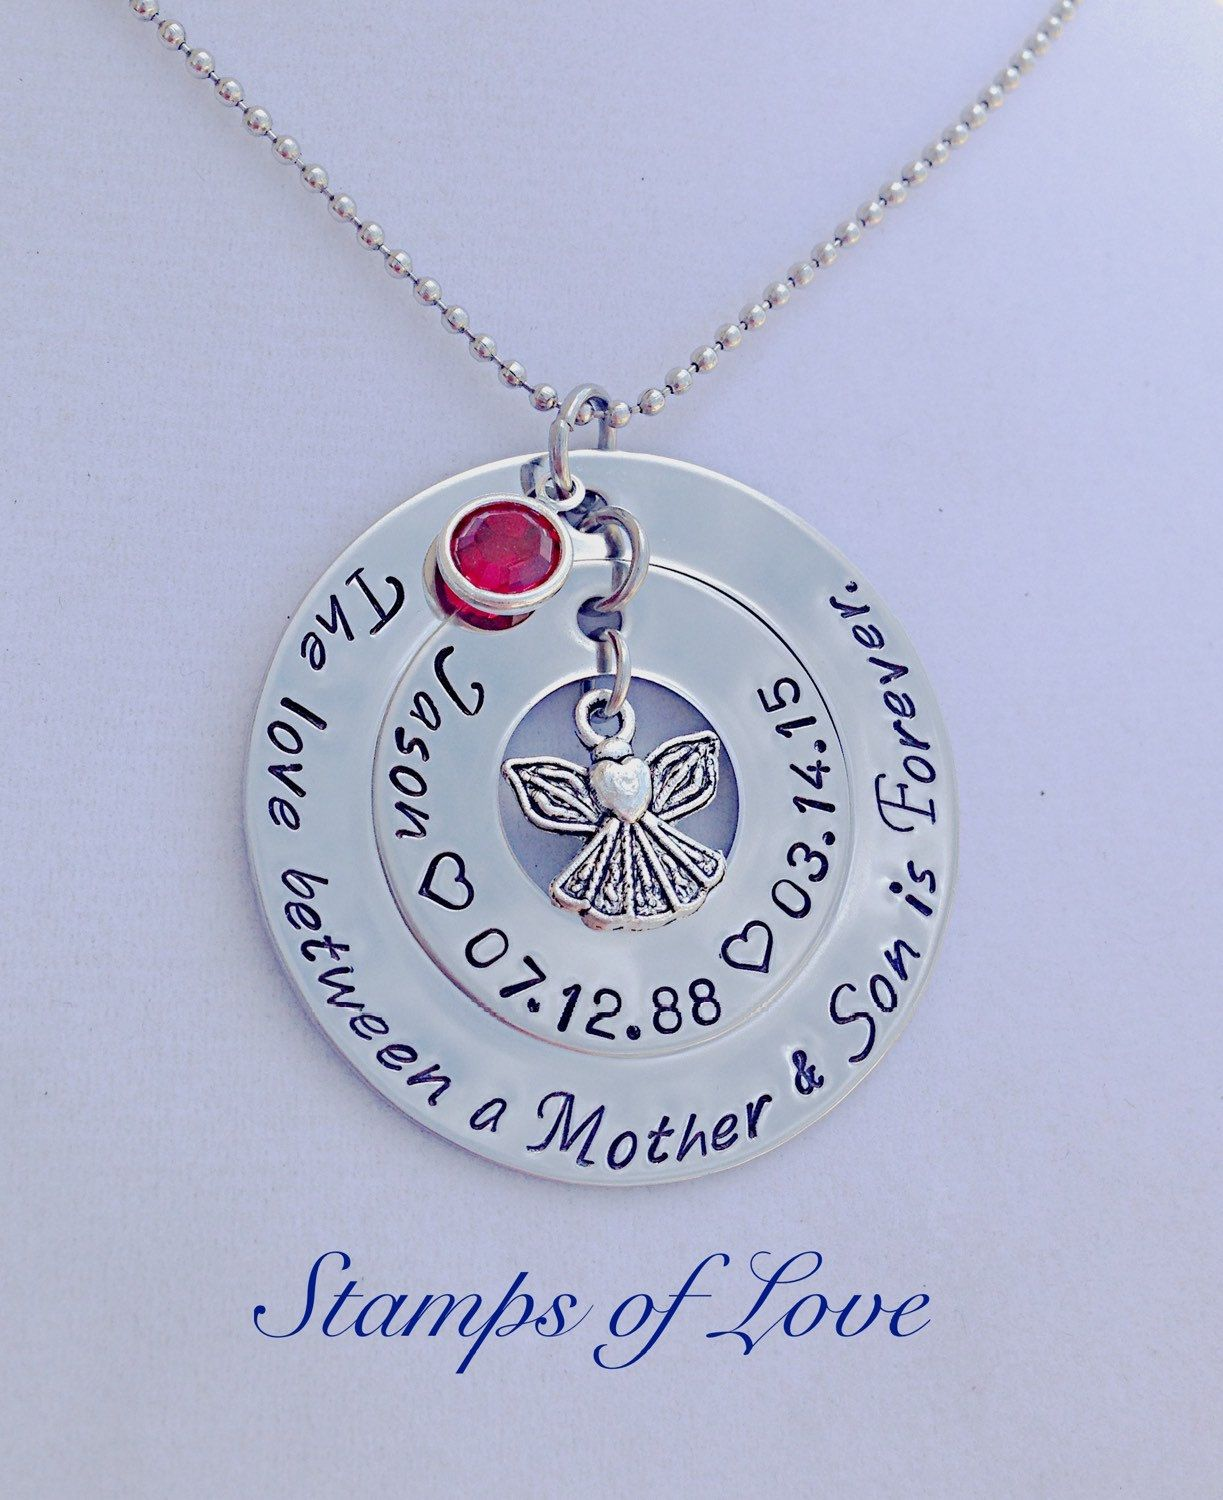 Loss of son personalized memorial necklace for mom the